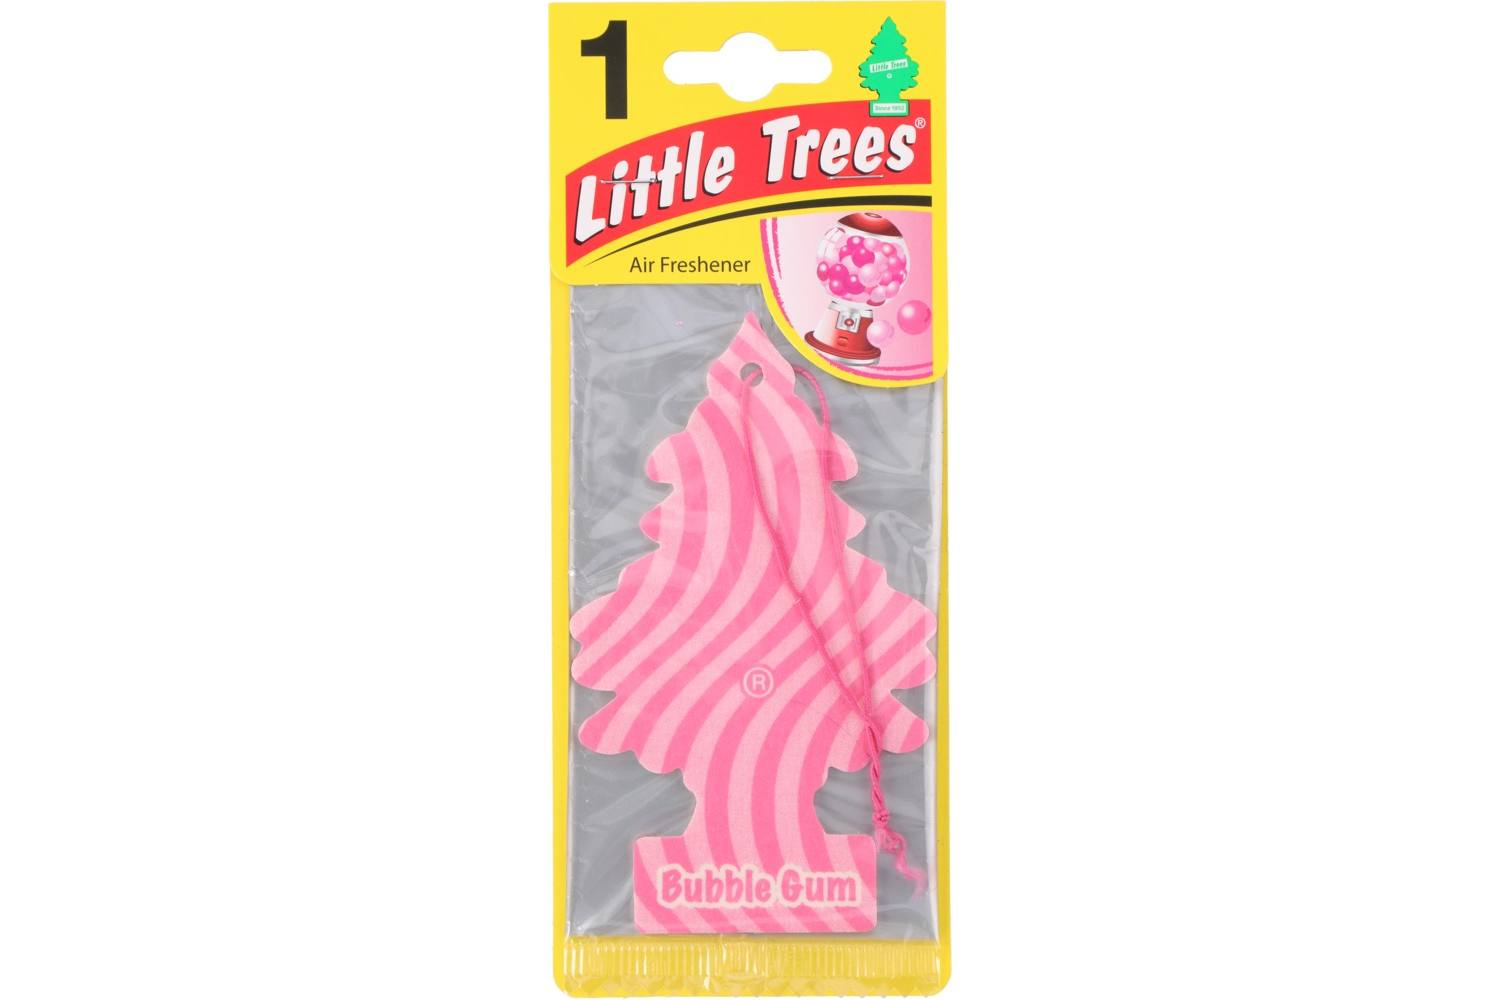 Air freshener, Little tree, bubble gum 1